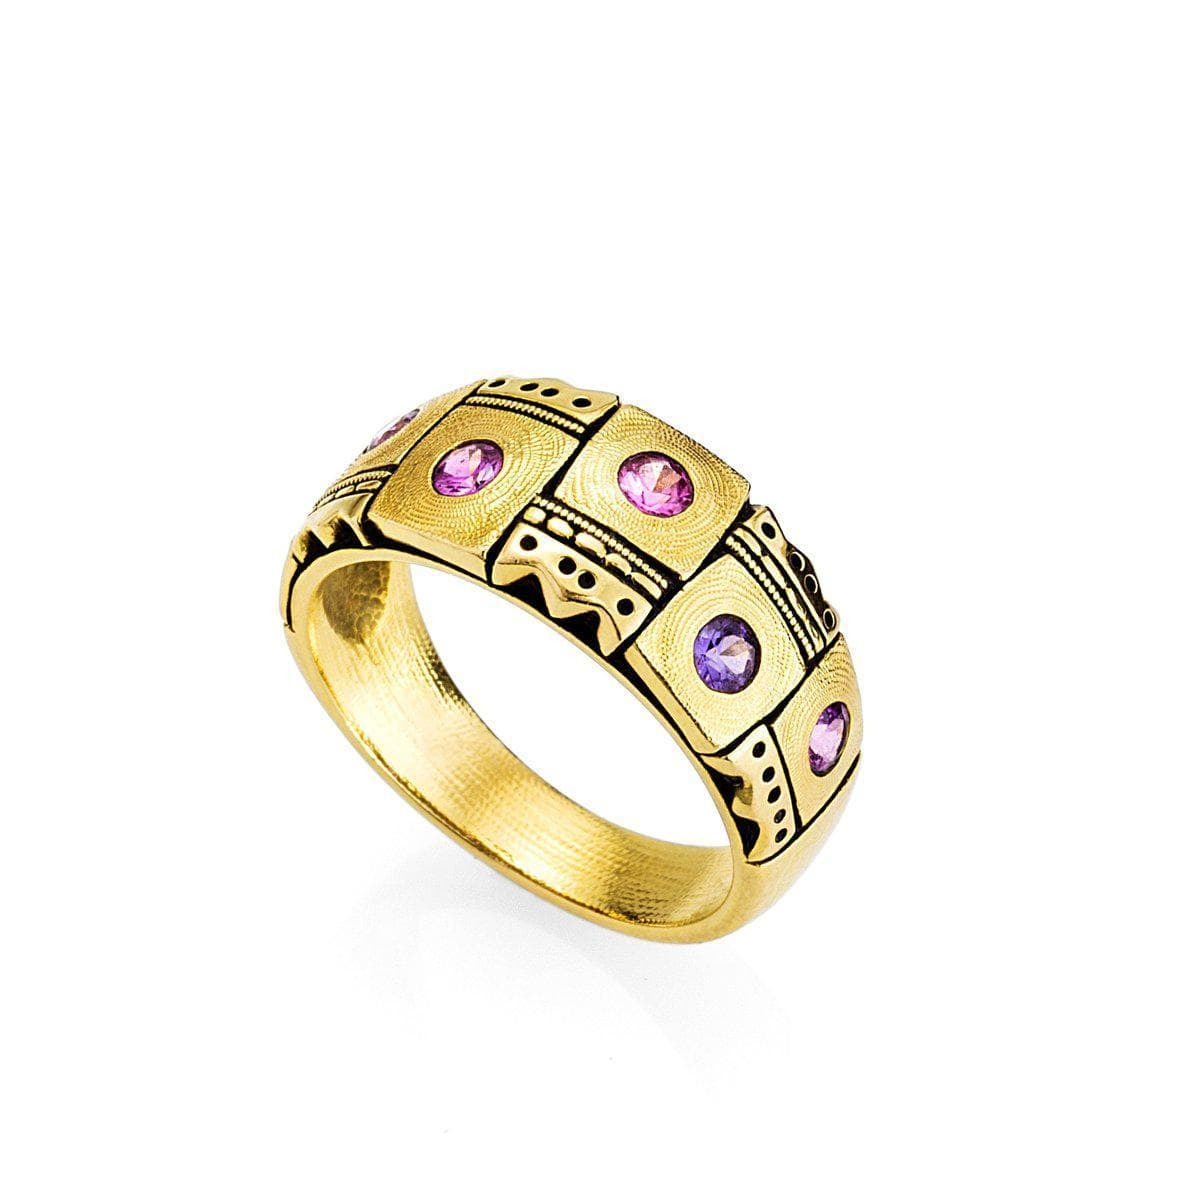 18K Crowned Heads Pink Purple Mix Sapphire Band - R-159S-Alex Sepkus-Renee Taylor Gallery